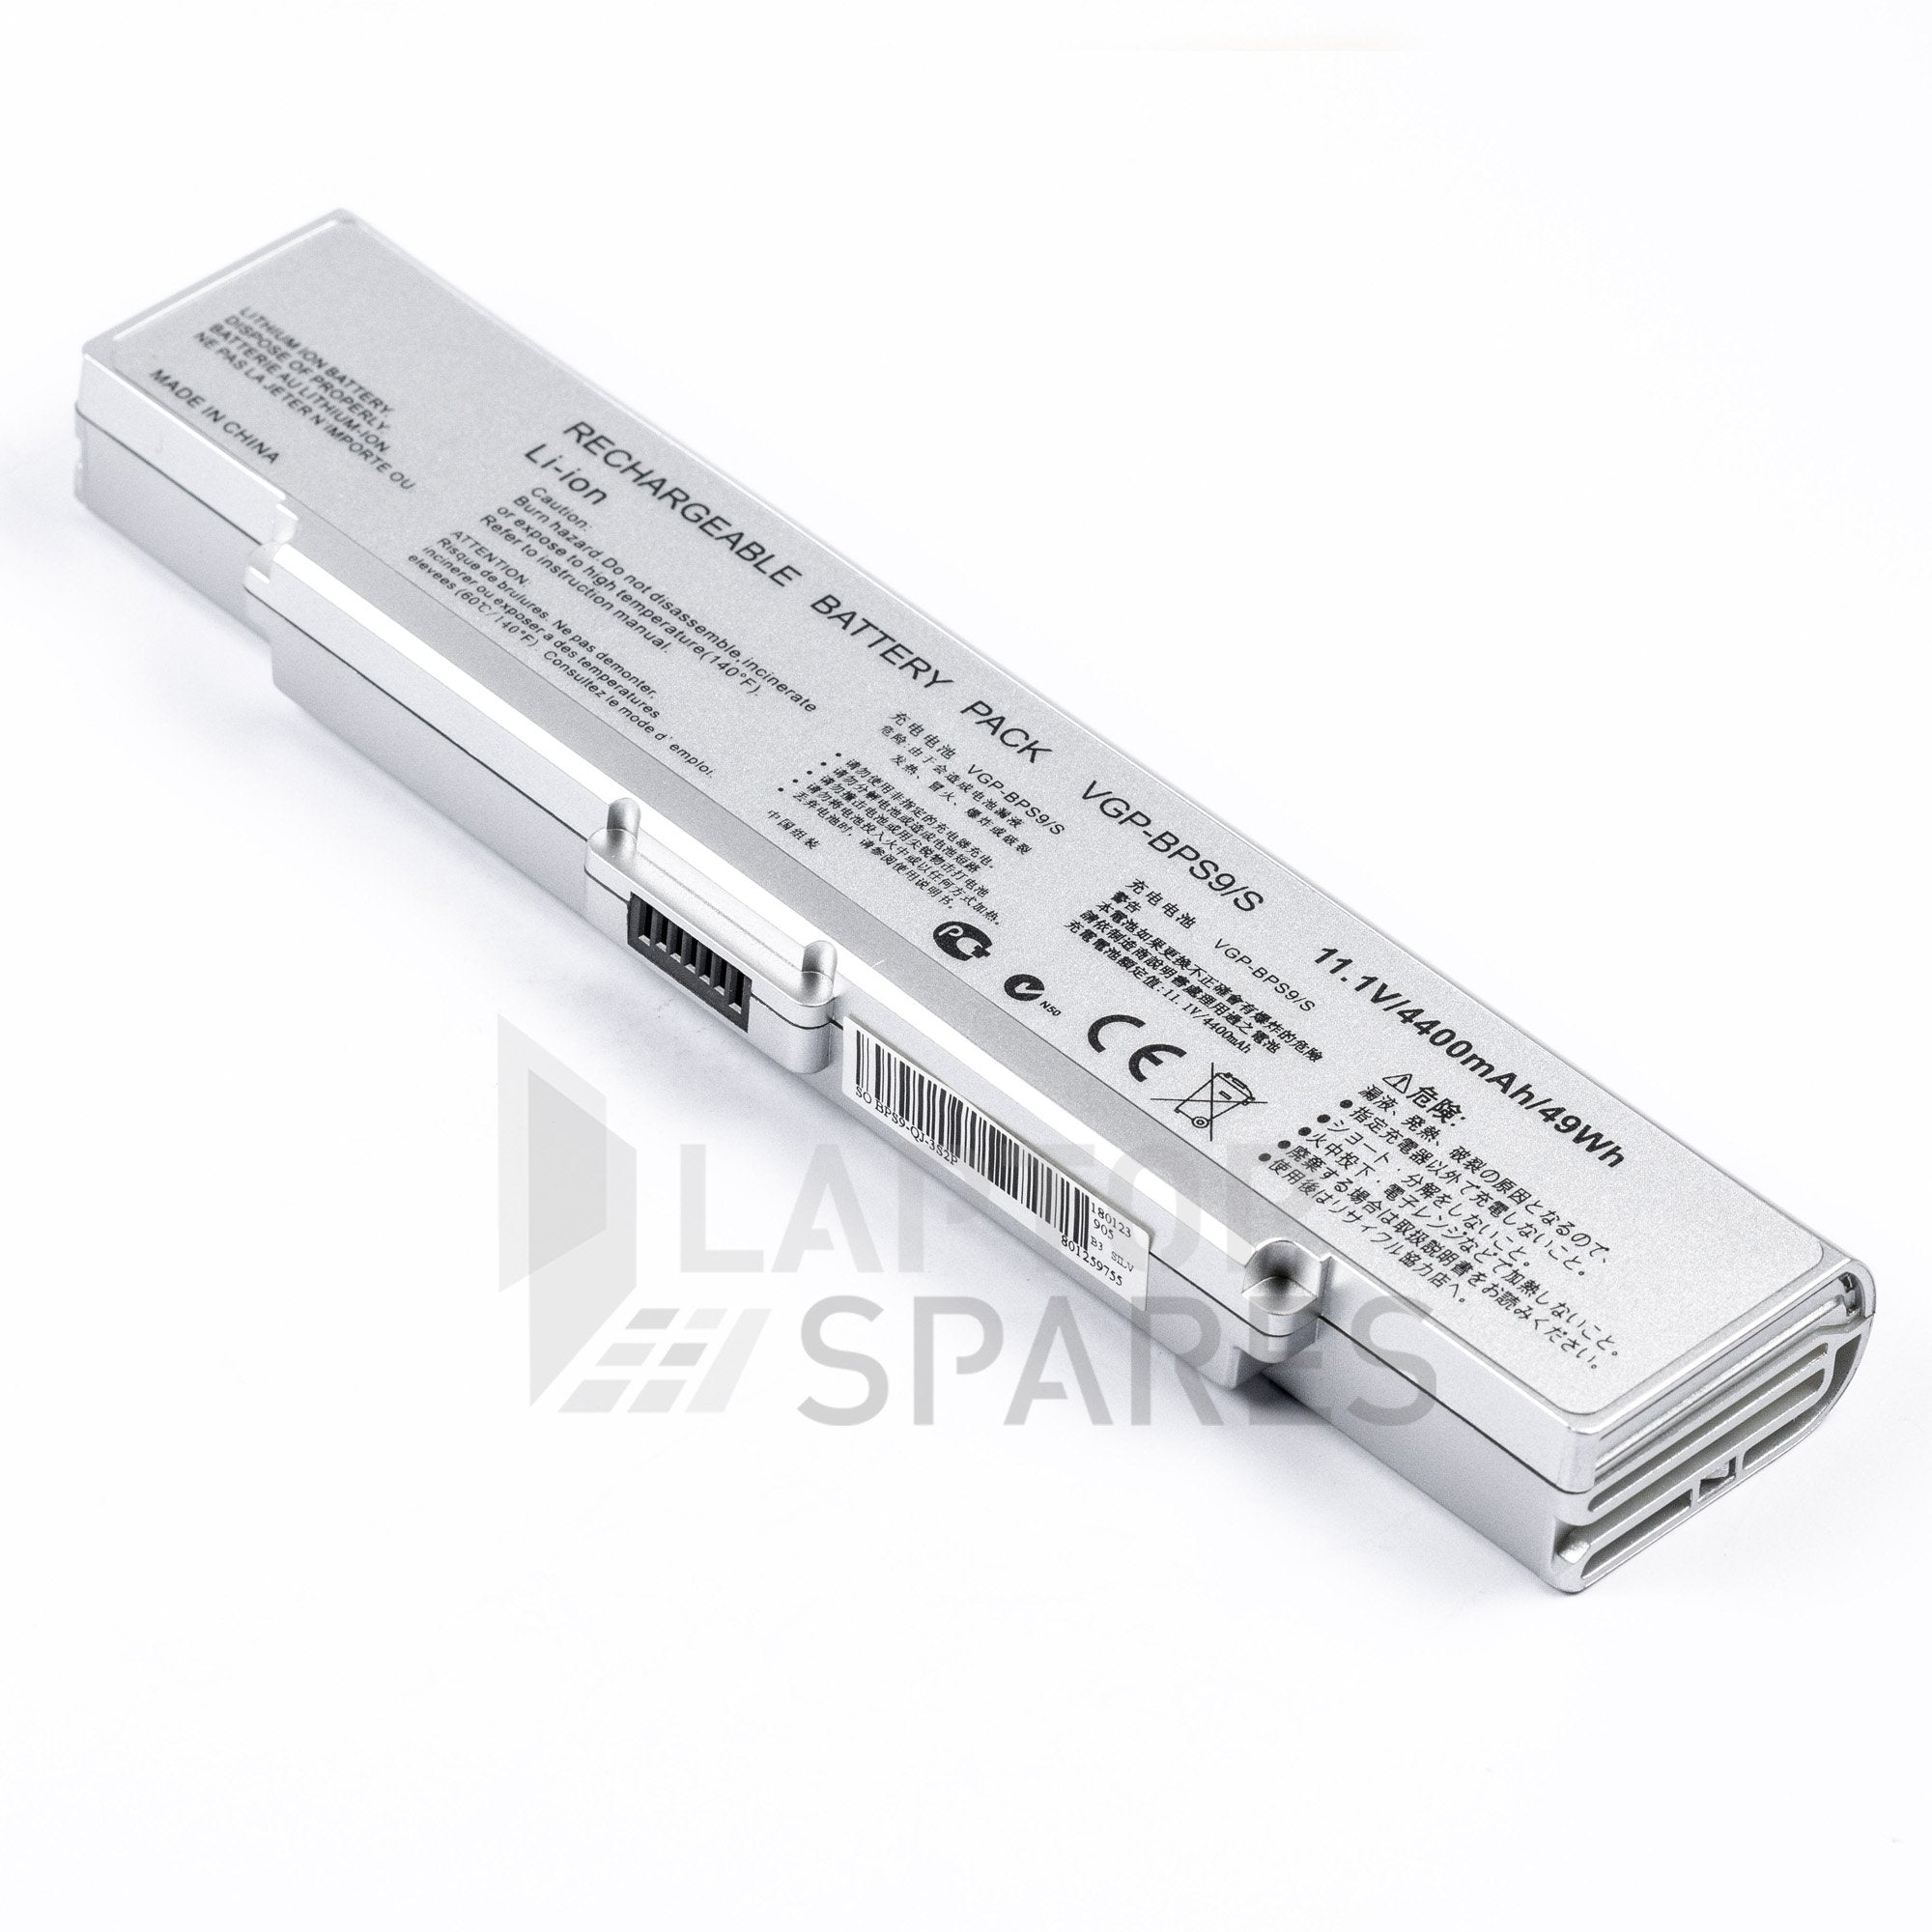 Sony VAIO VGN-NR50 4400mAh 6 Cell Battery